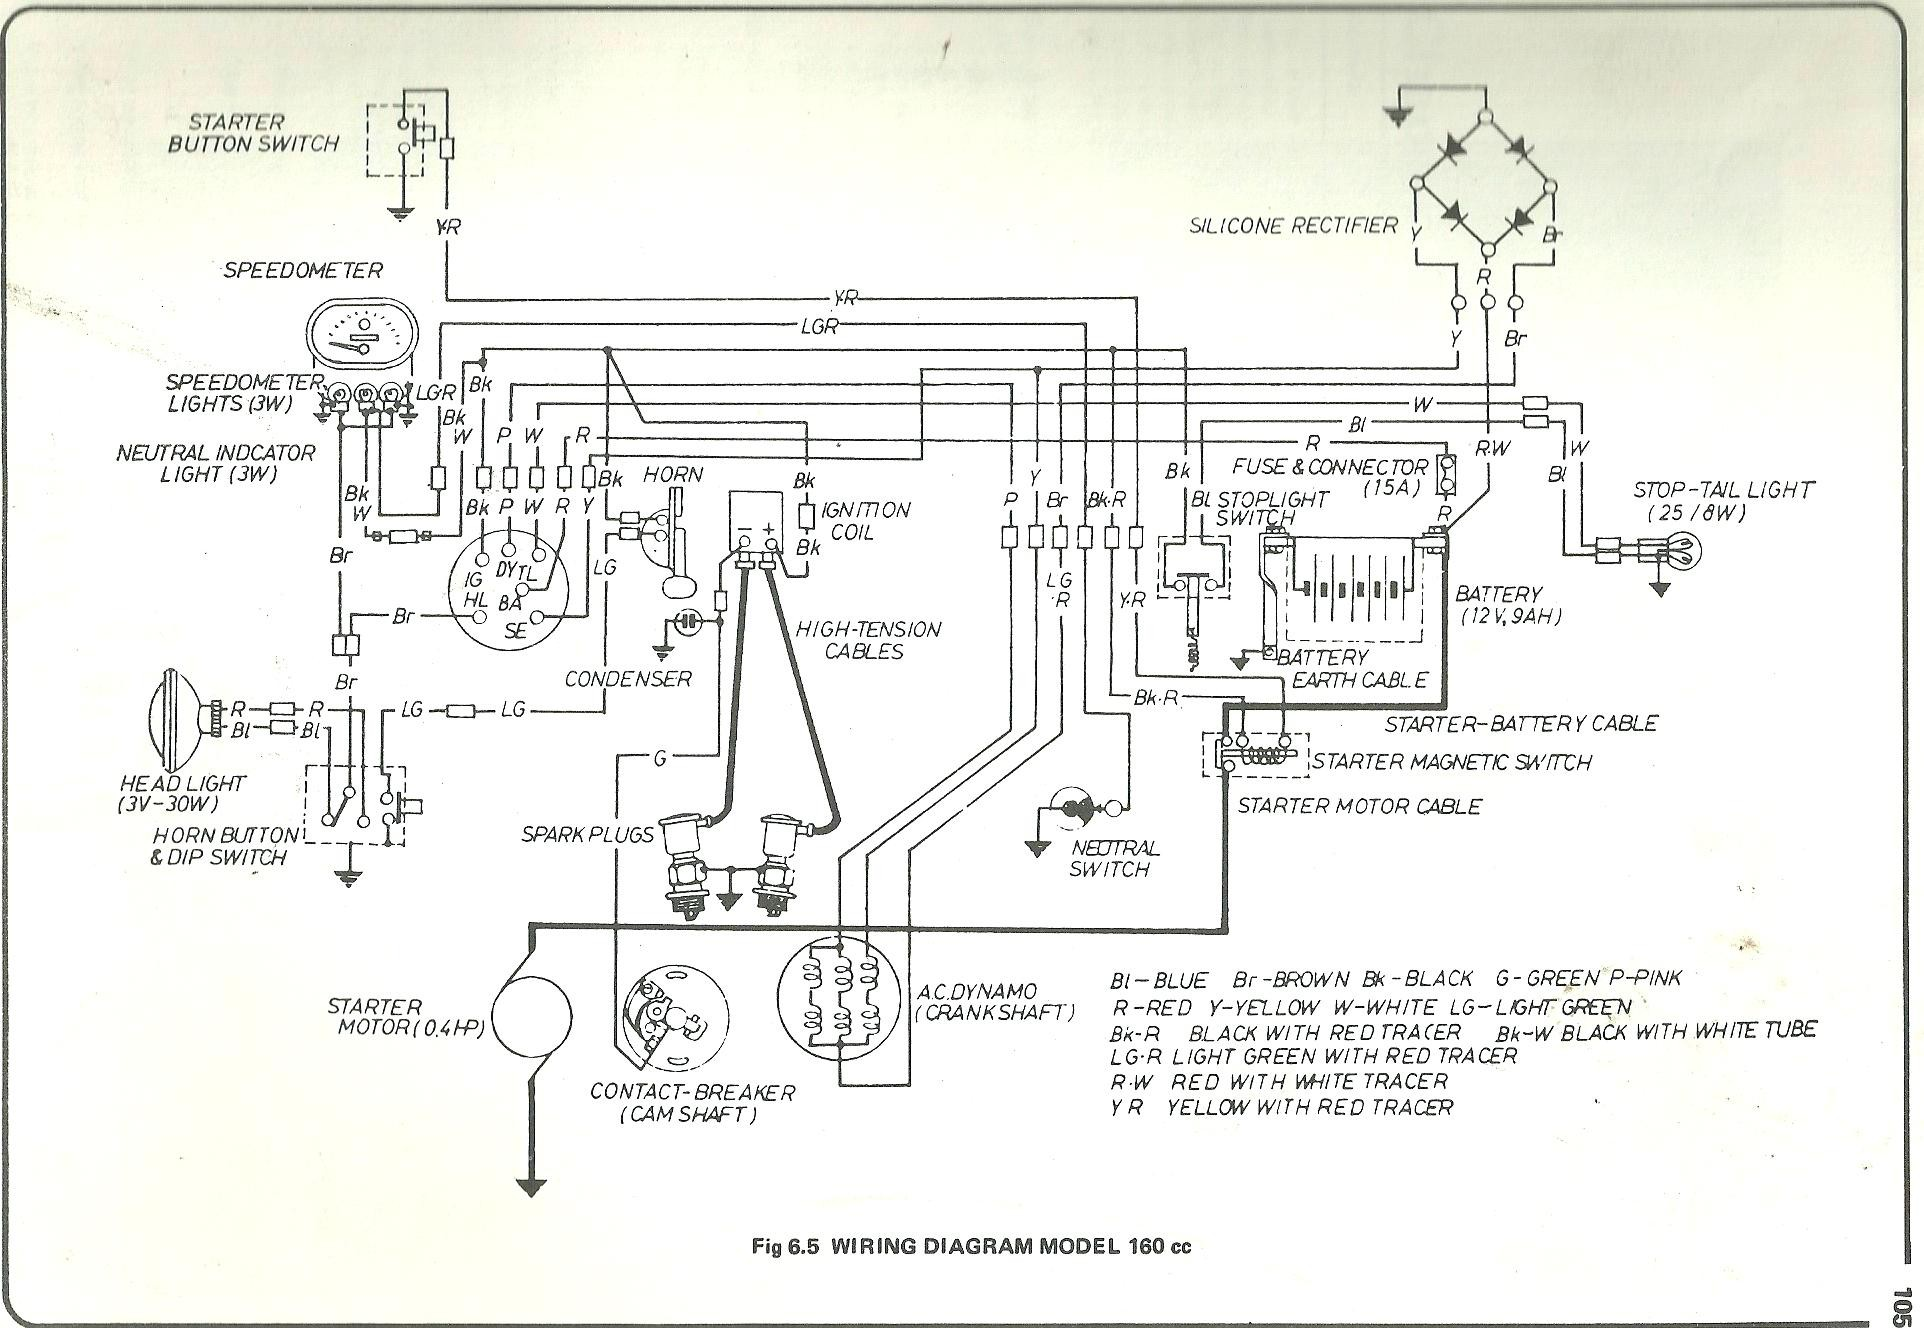 Honda Nighthawk 250 Wiring Diagram Content Resource Of Rincon Outstanding Cb Contemporary Rebel 450 1985